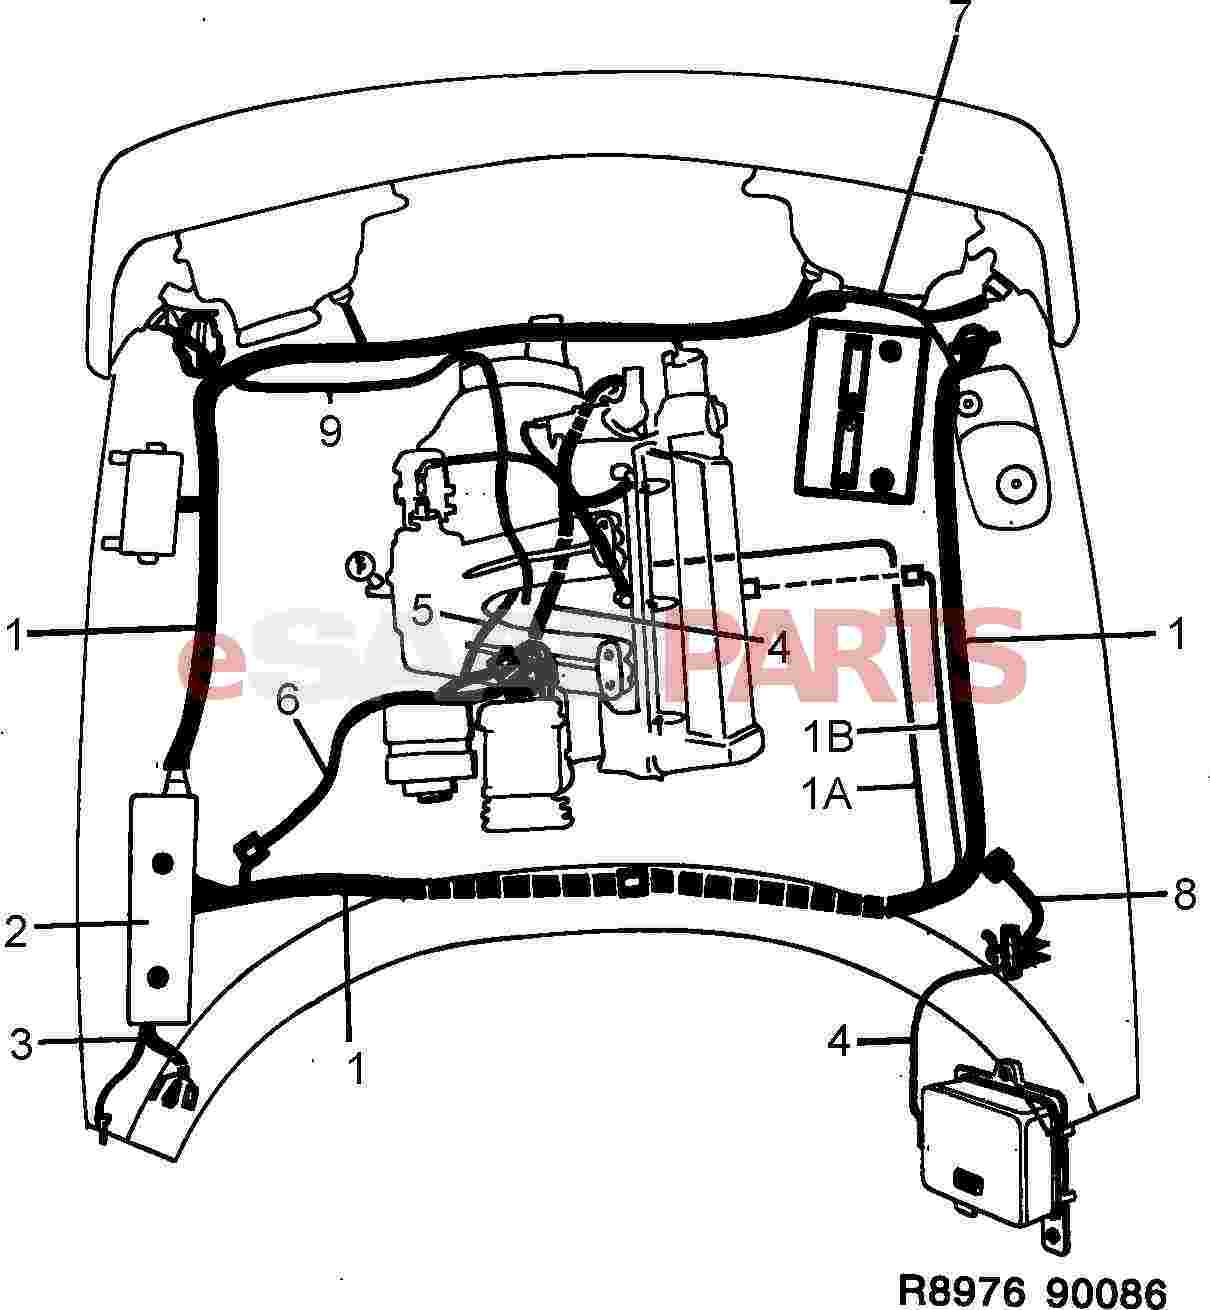 hight resolution of saab wiring harness wiring diagram basic 1986 saab 900 turbo wiring harness esaabparts com saab 900